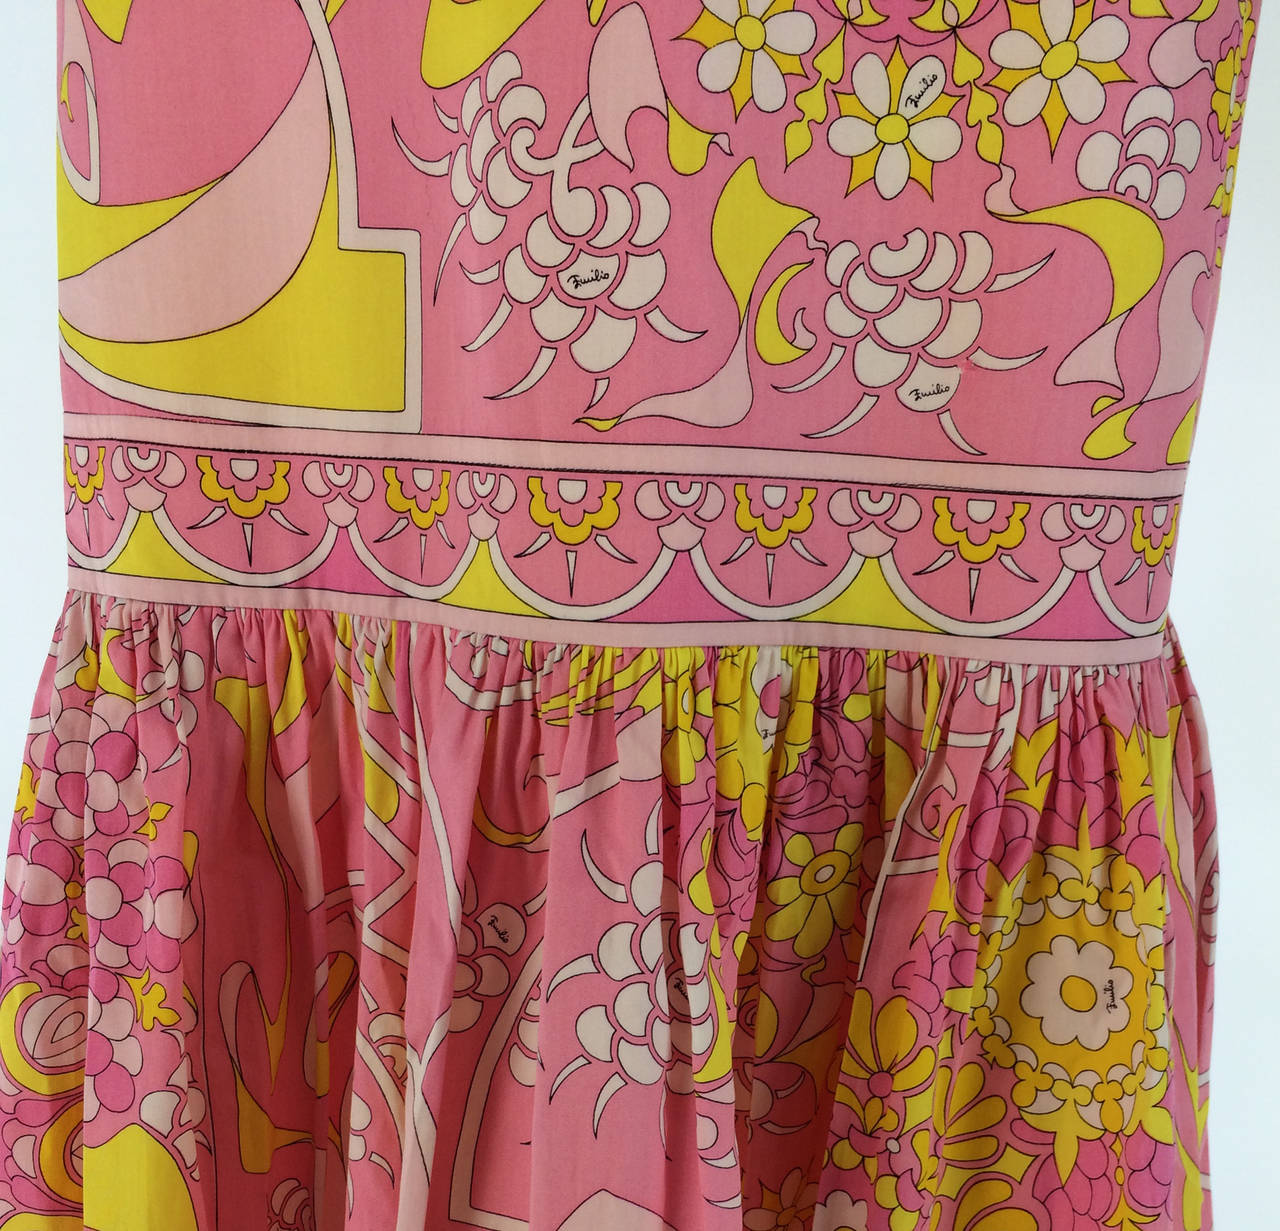 Emilio Pucci printed cotton maxi dress out of the ordinary design 1960s 3